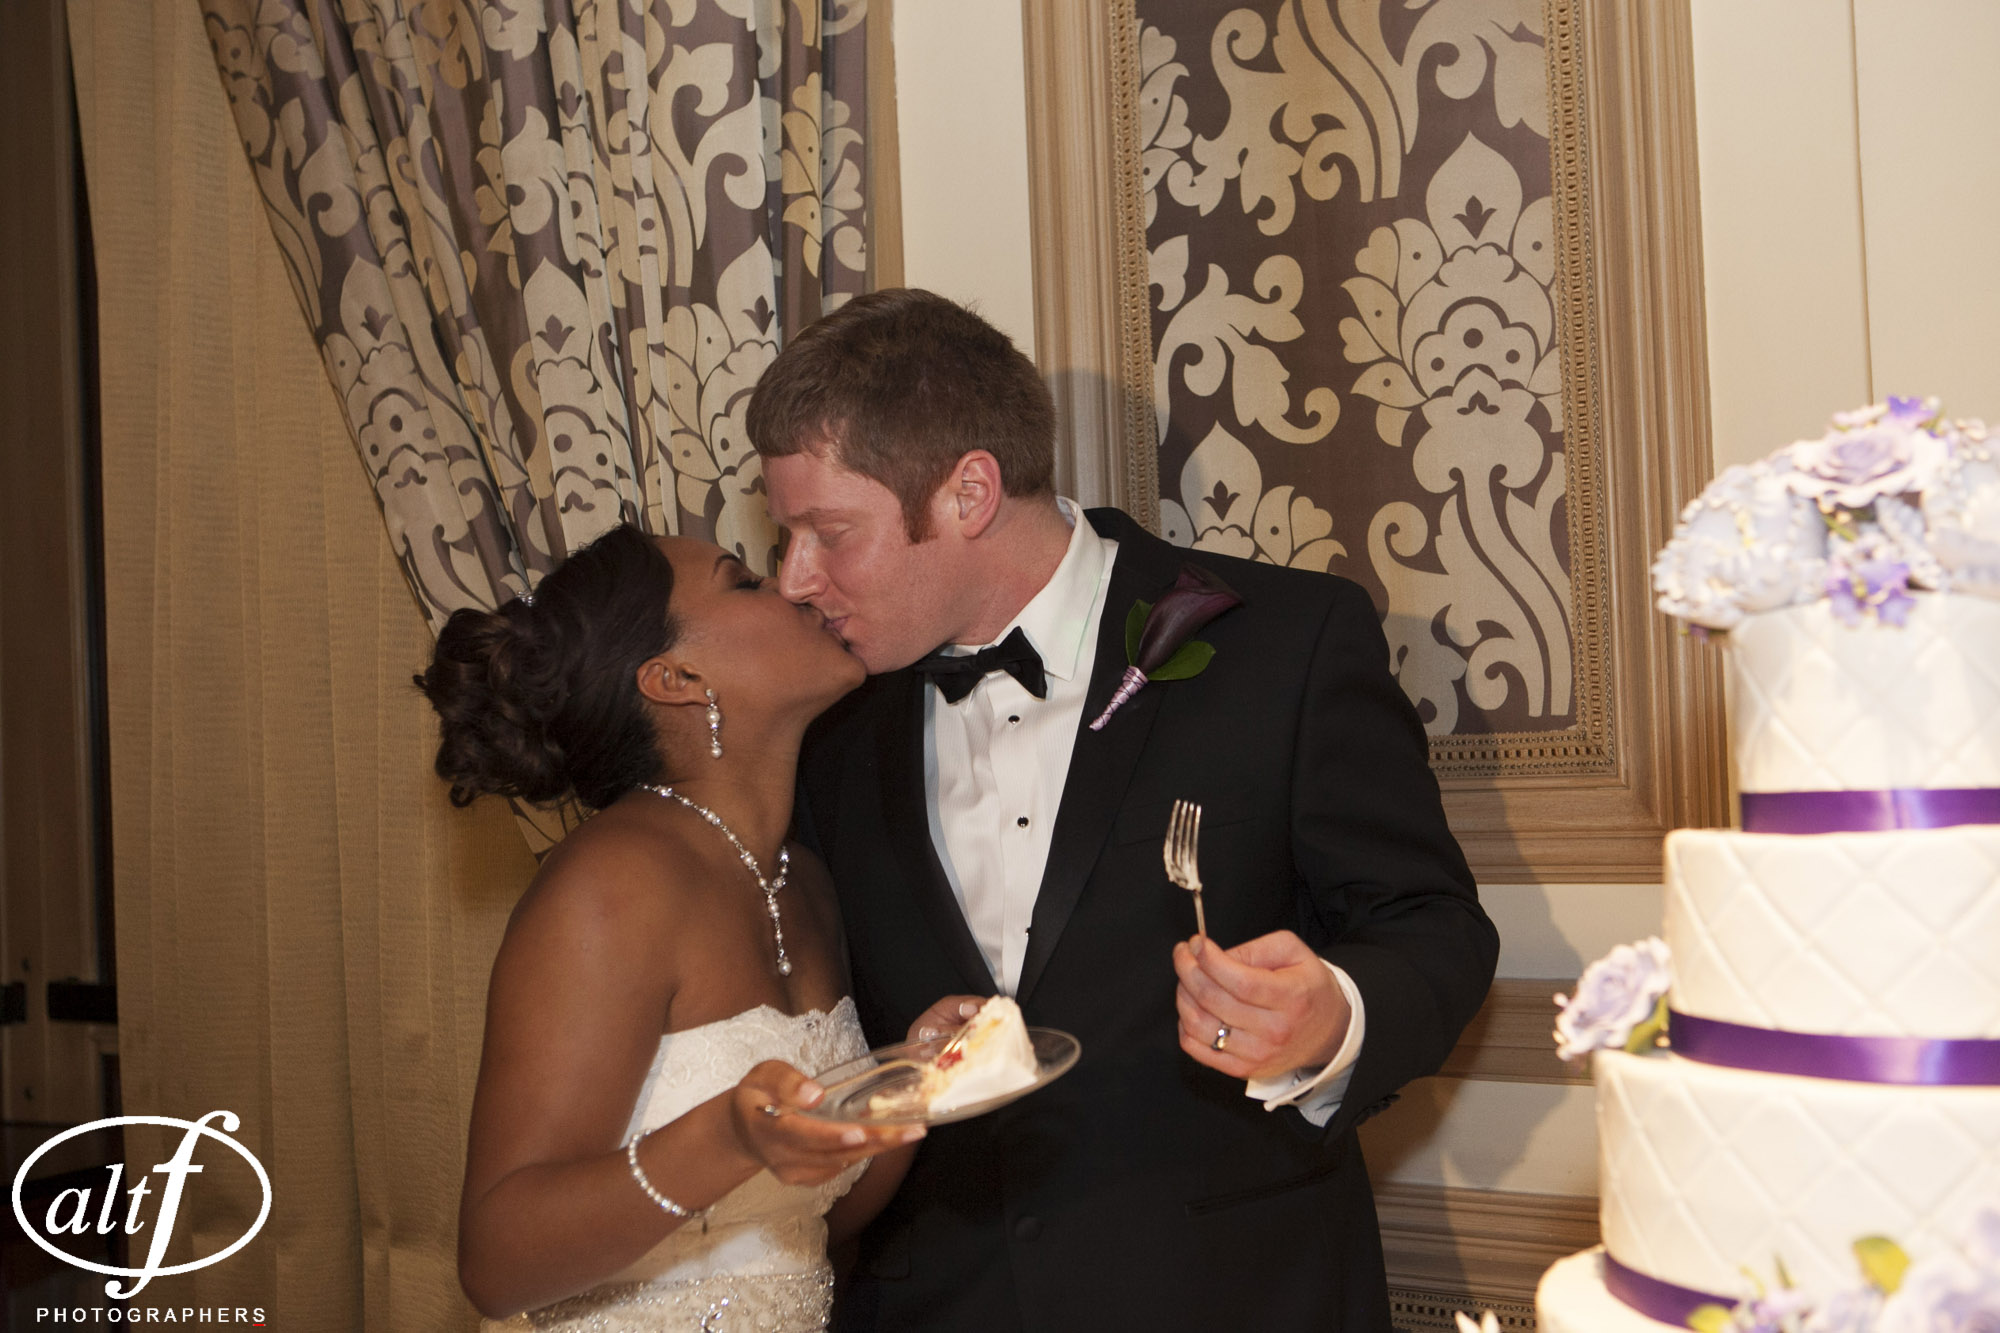 Cutting the wedding cake and kisses.Las Vegas Wedding Planner Andrea Eppolito   Wedding at Bellagio   Photo by Alt F